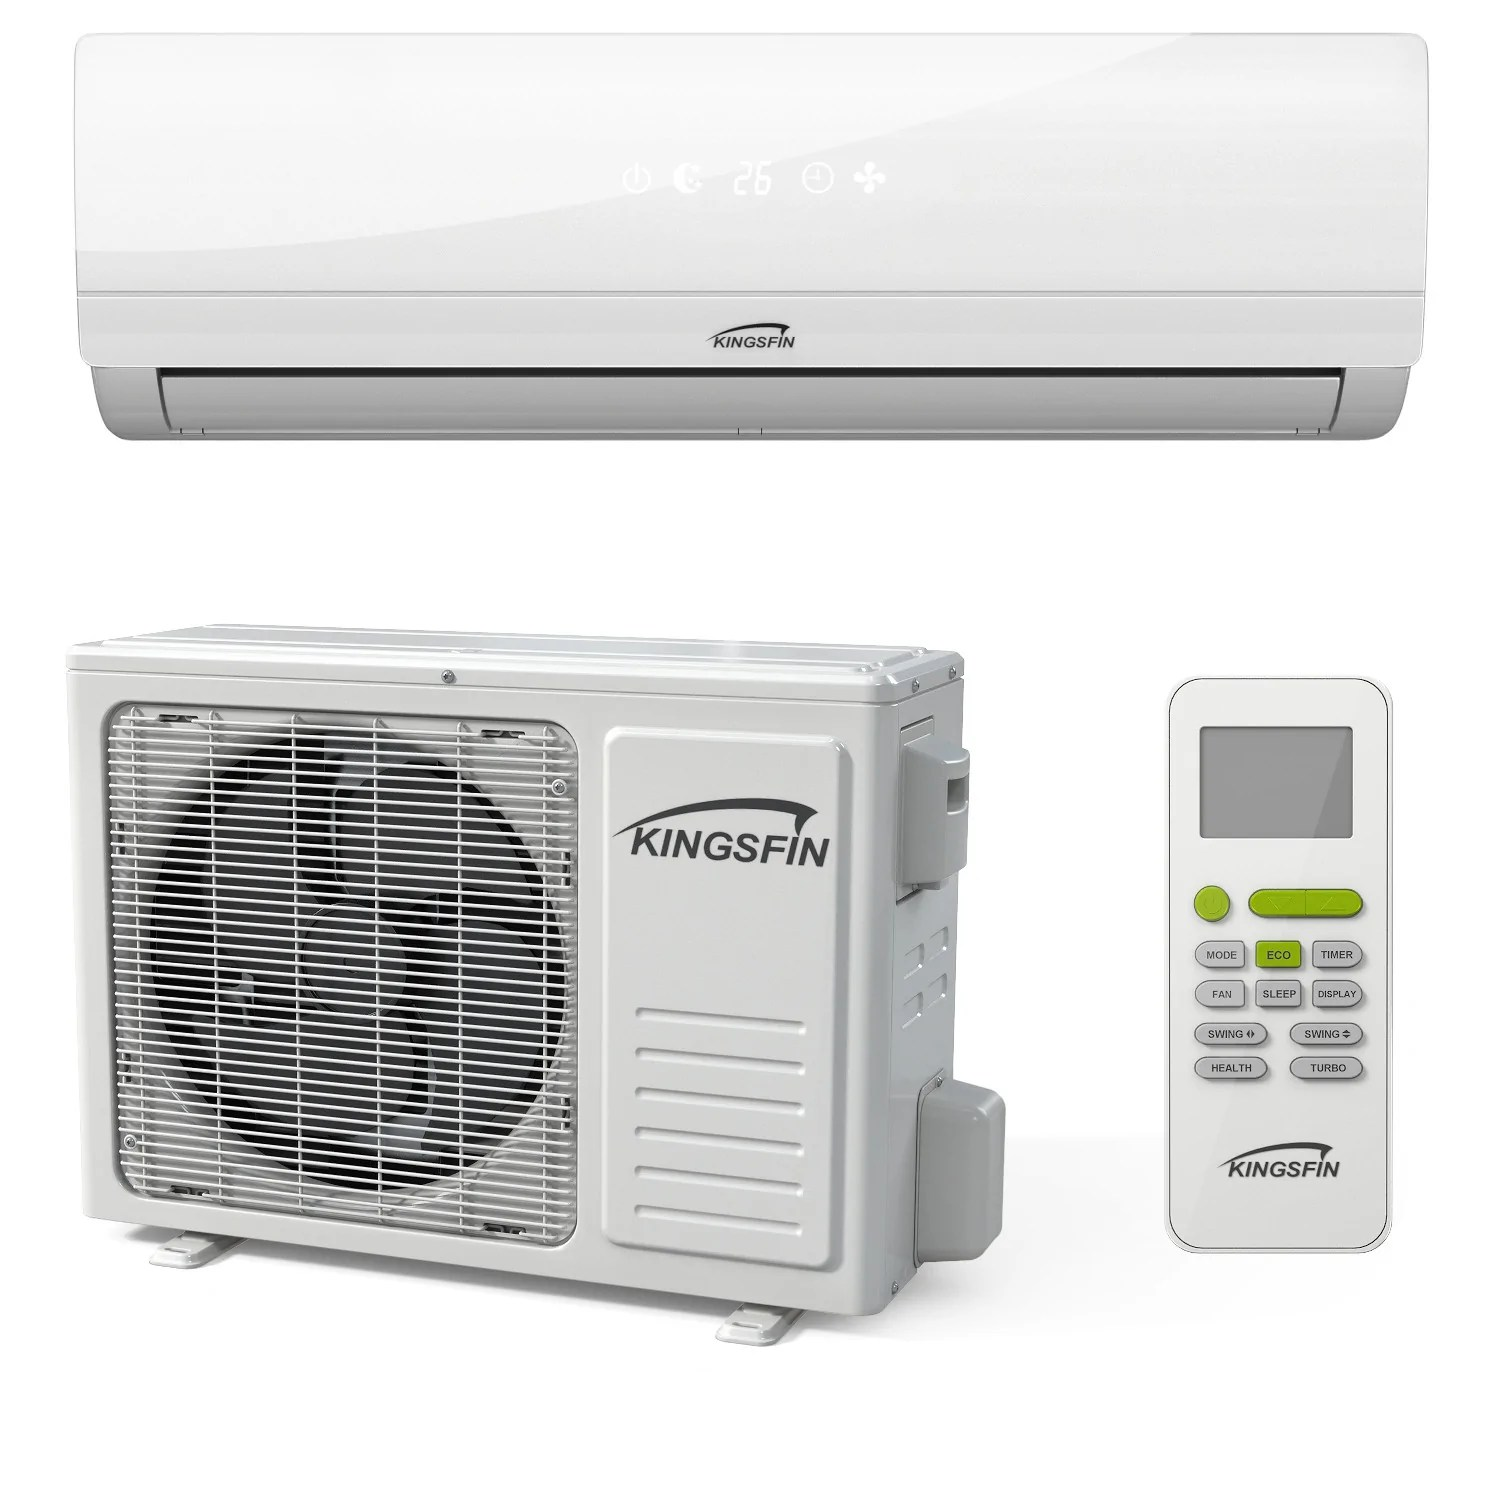 hight resolution of kingsfin mini split ductless ac air conditioner and heat pump 15 18 seer complete system